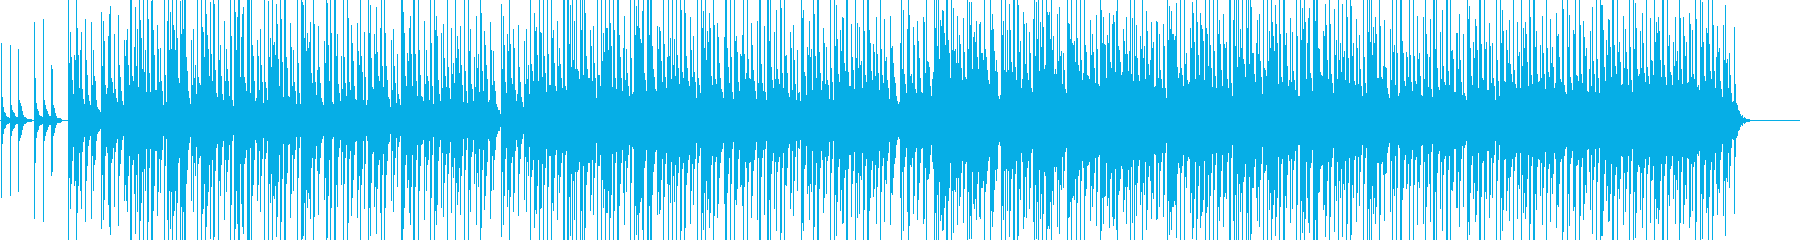 Okinawa-style Hobobon BGM using the Sanshin's reproduced waveform